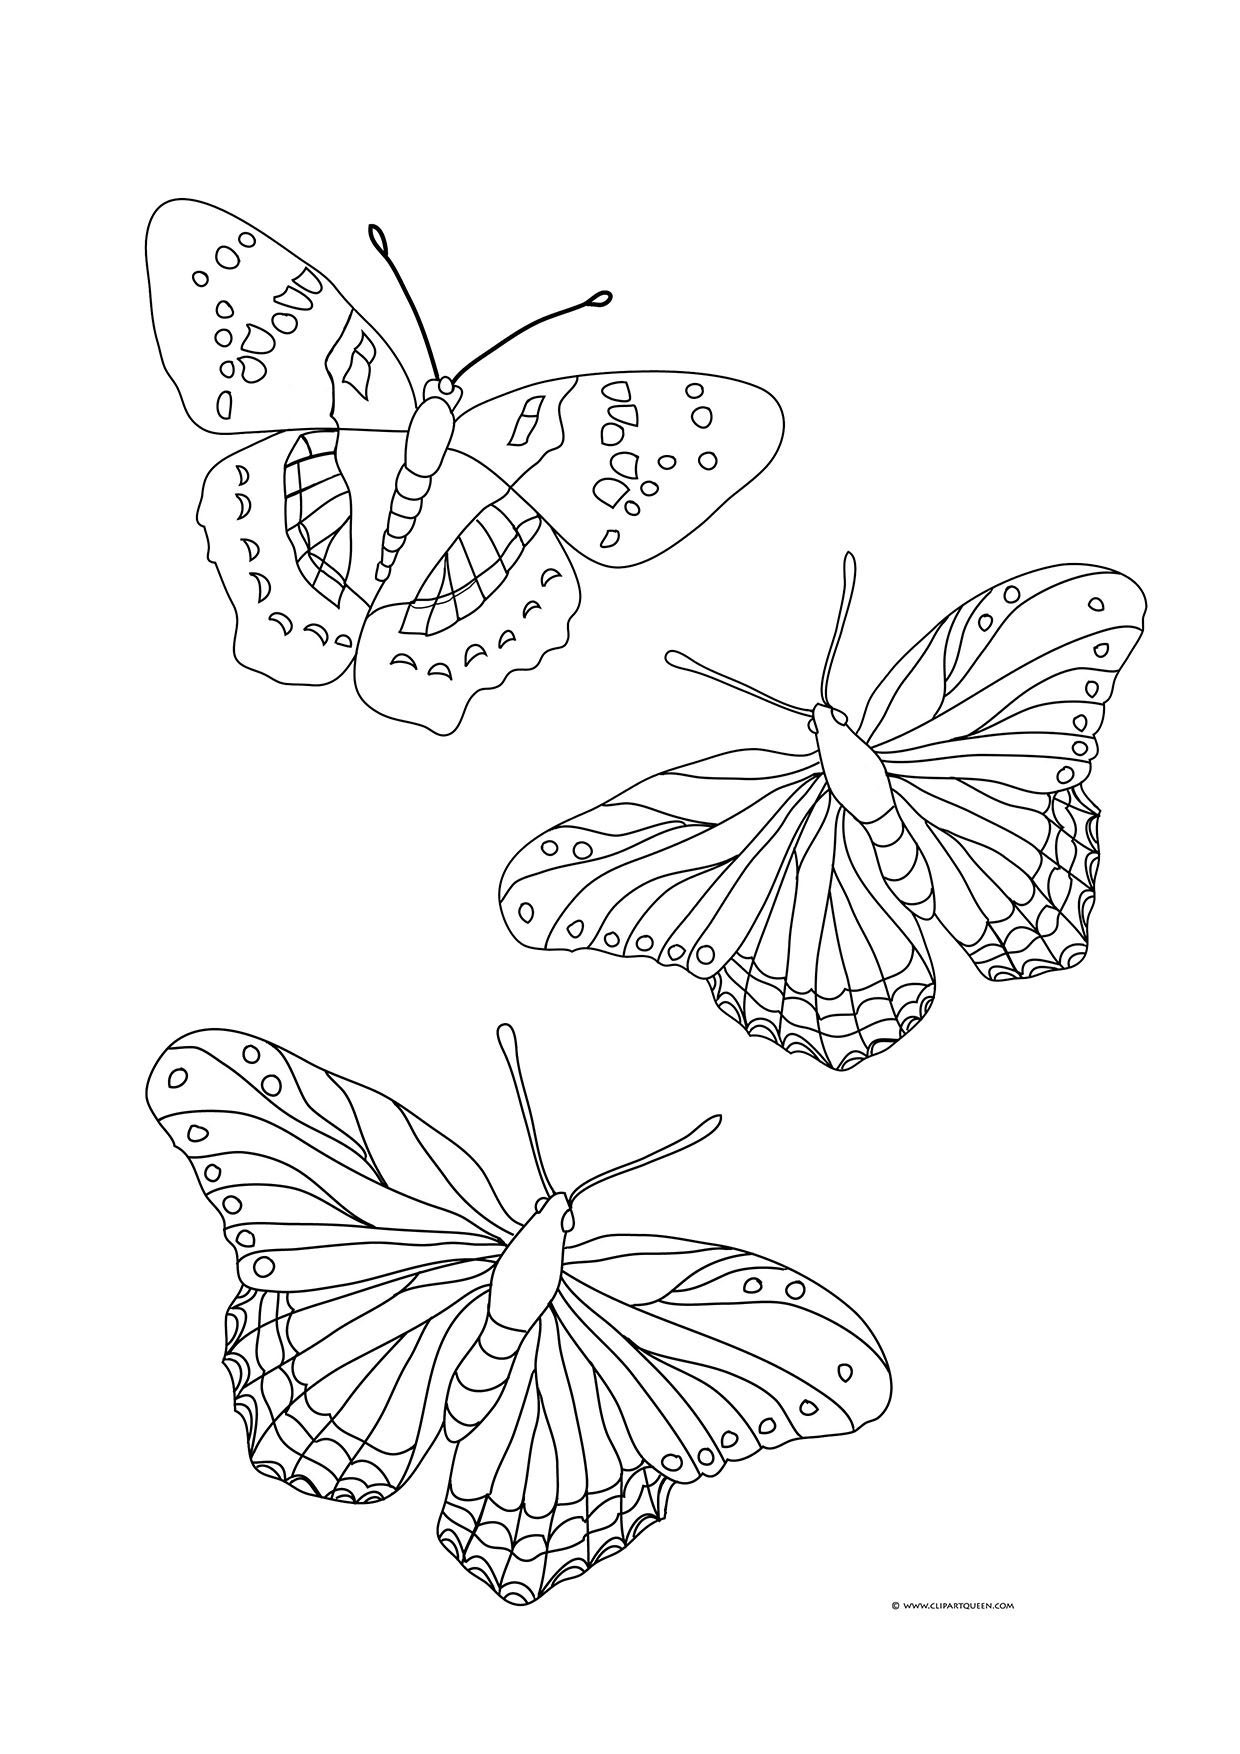 butterfly coloring book page butterflies coloring pages coloring pages to print book butterfly page coloring